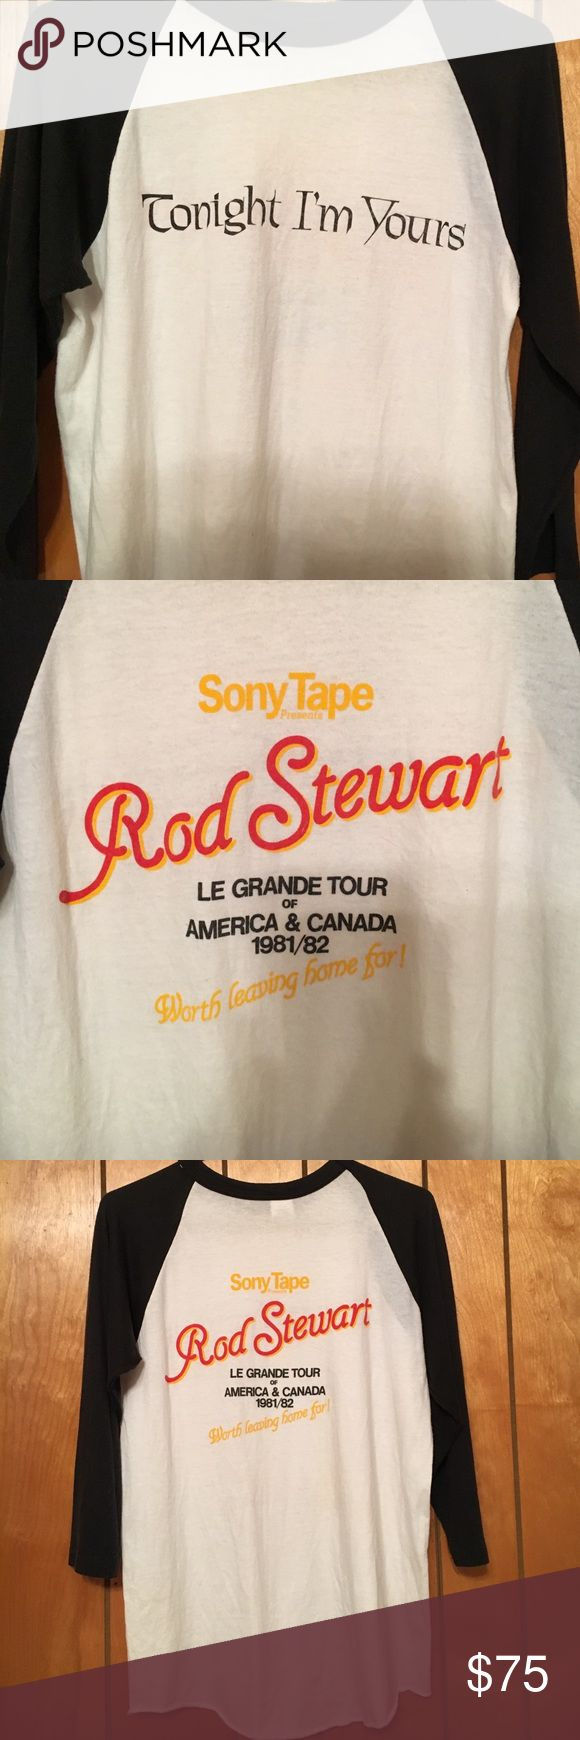 Vintage Rod Stewart 1981/82 concert tshirt Rod Stewart 1981/82 Tonite I'm Yours concert baseball TSHIRT. Sony Tape sponsored this LeGrande Tour of America and Canada. Vintage tshirt because I was there!!! Nice condition!‼️ BANTAMS Other